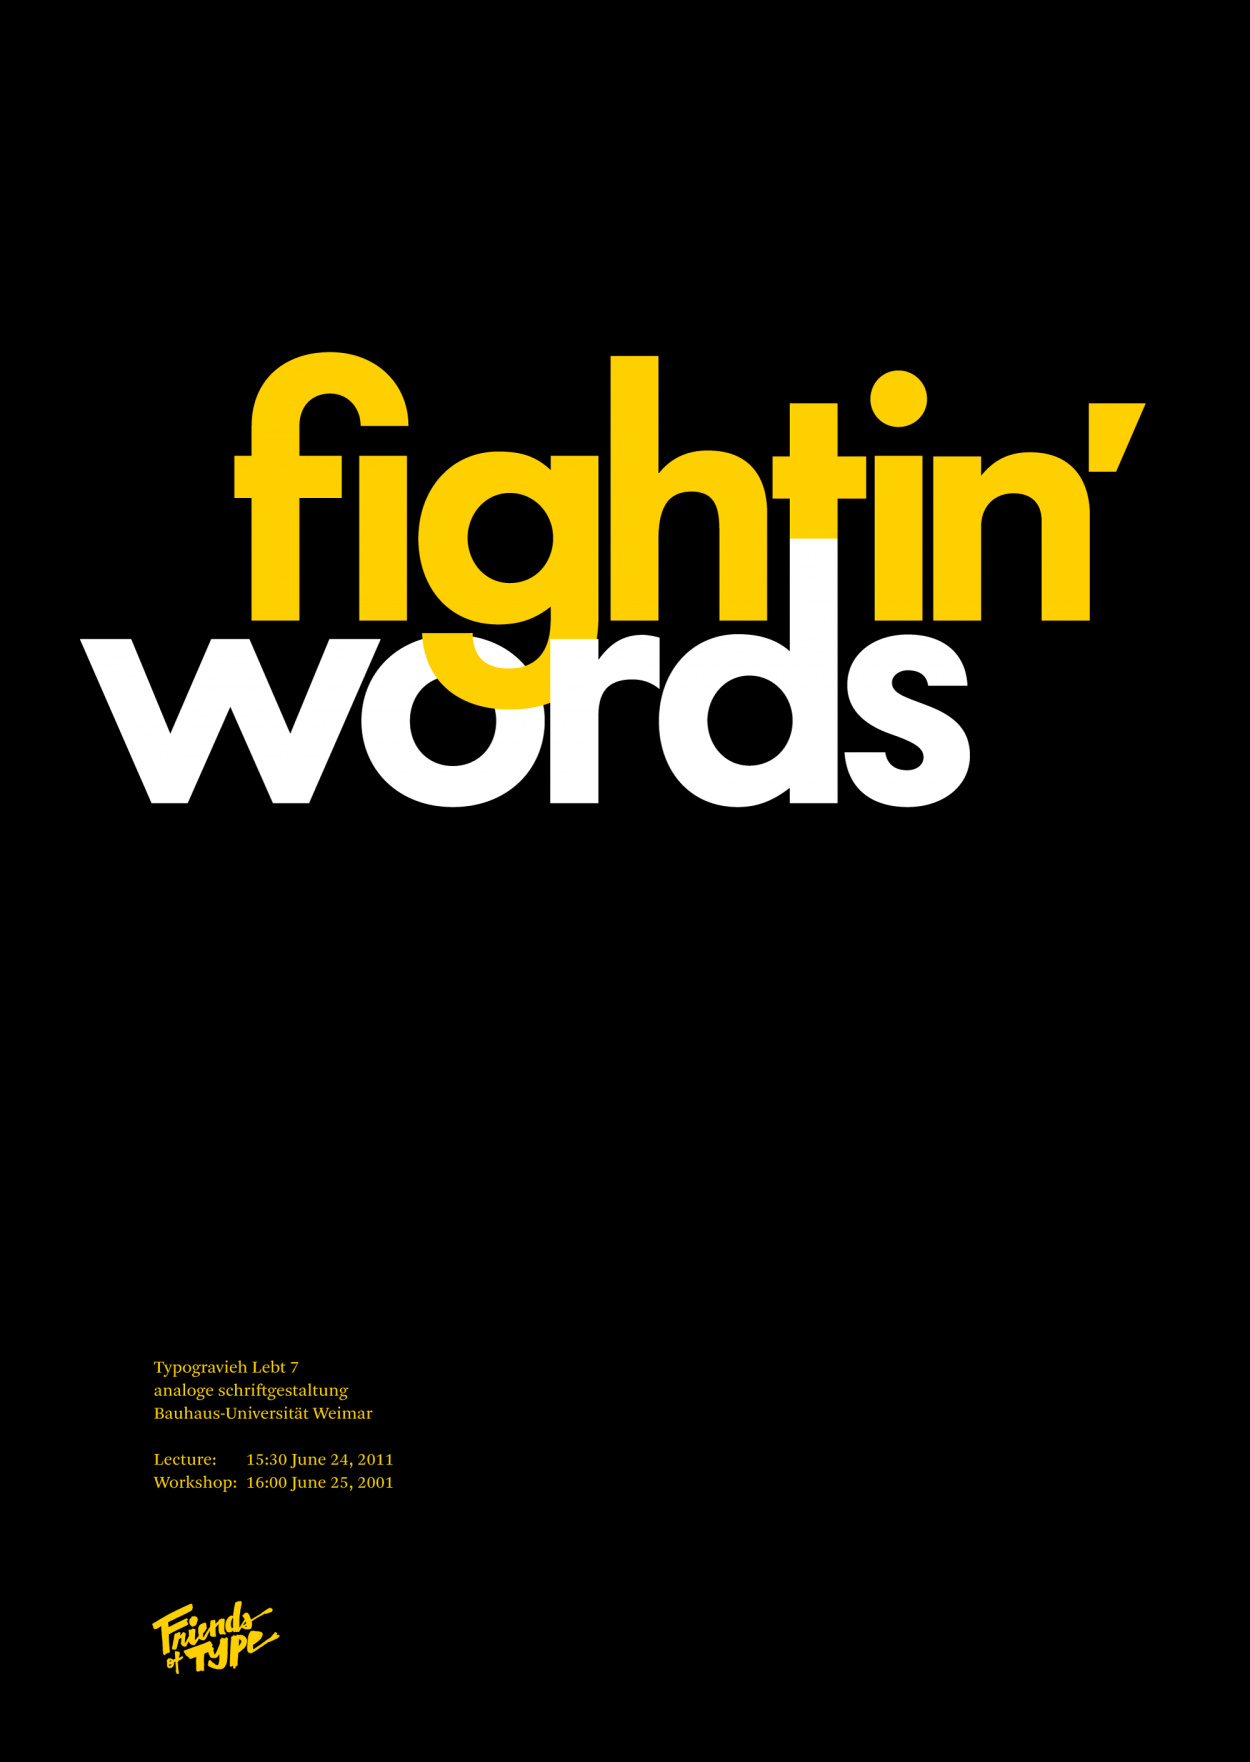 Fightin Words, Bauhaus lecture and workshop